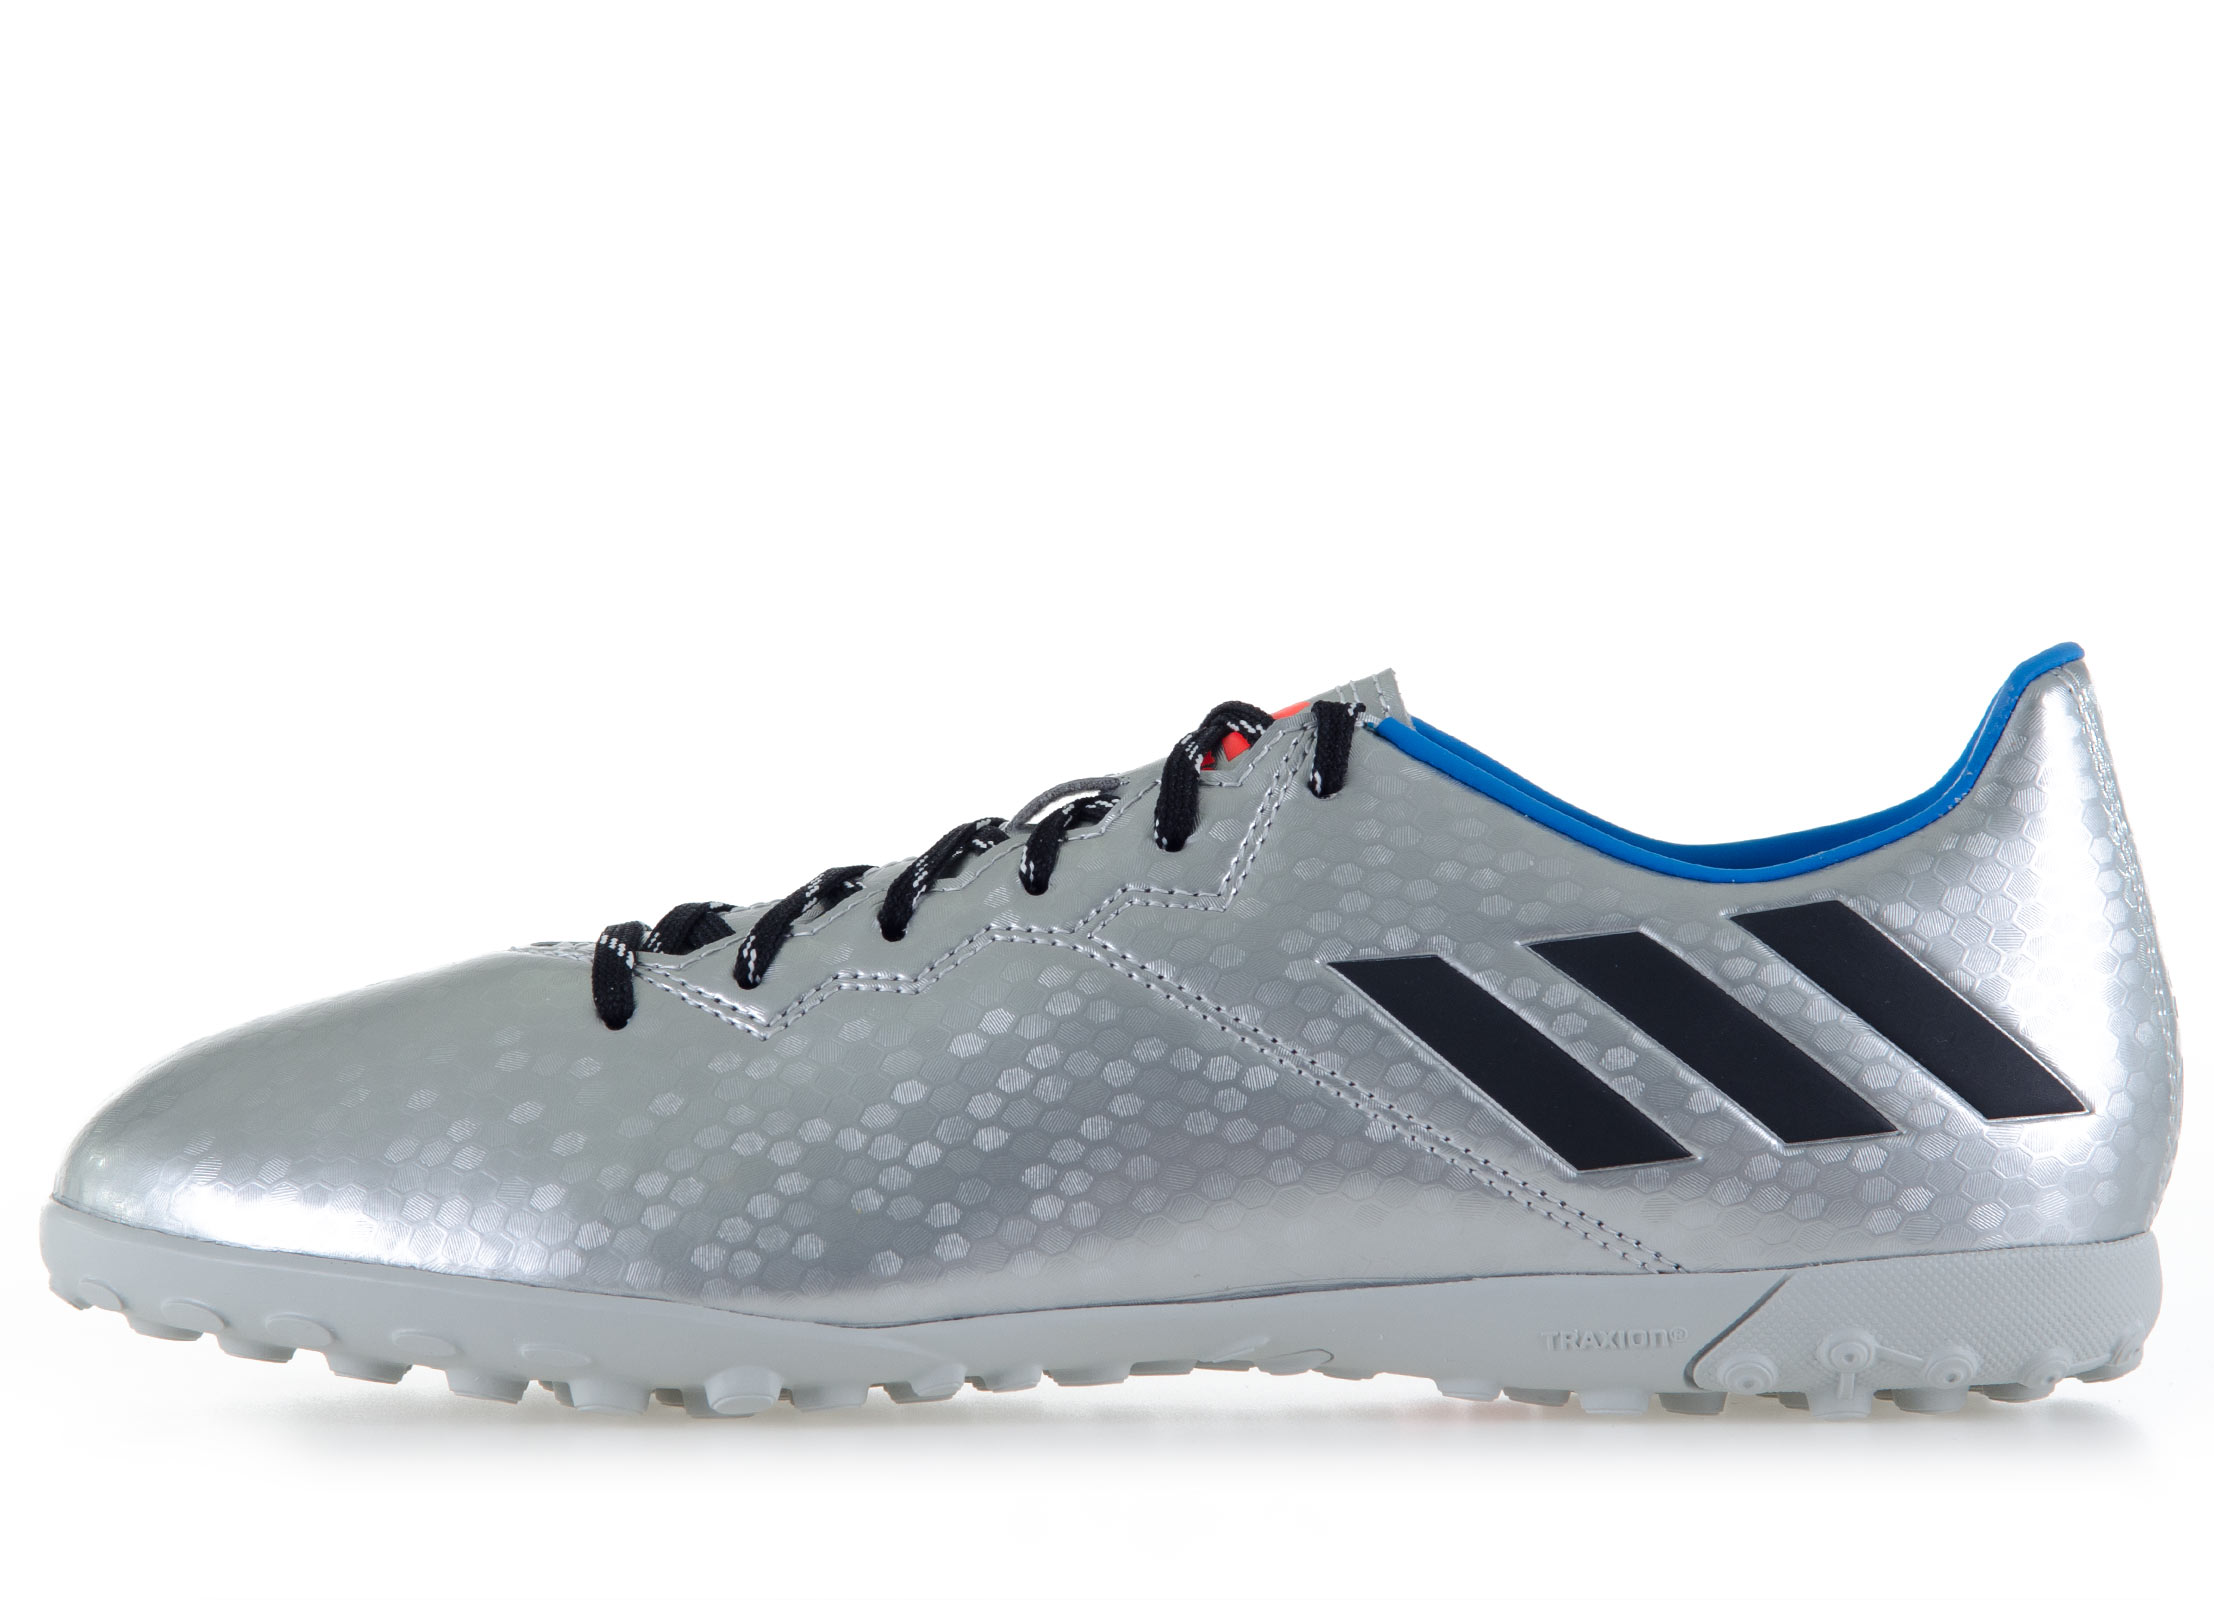 SOCCER adidas Performance MESSI 16.4 S79657 Ασημί